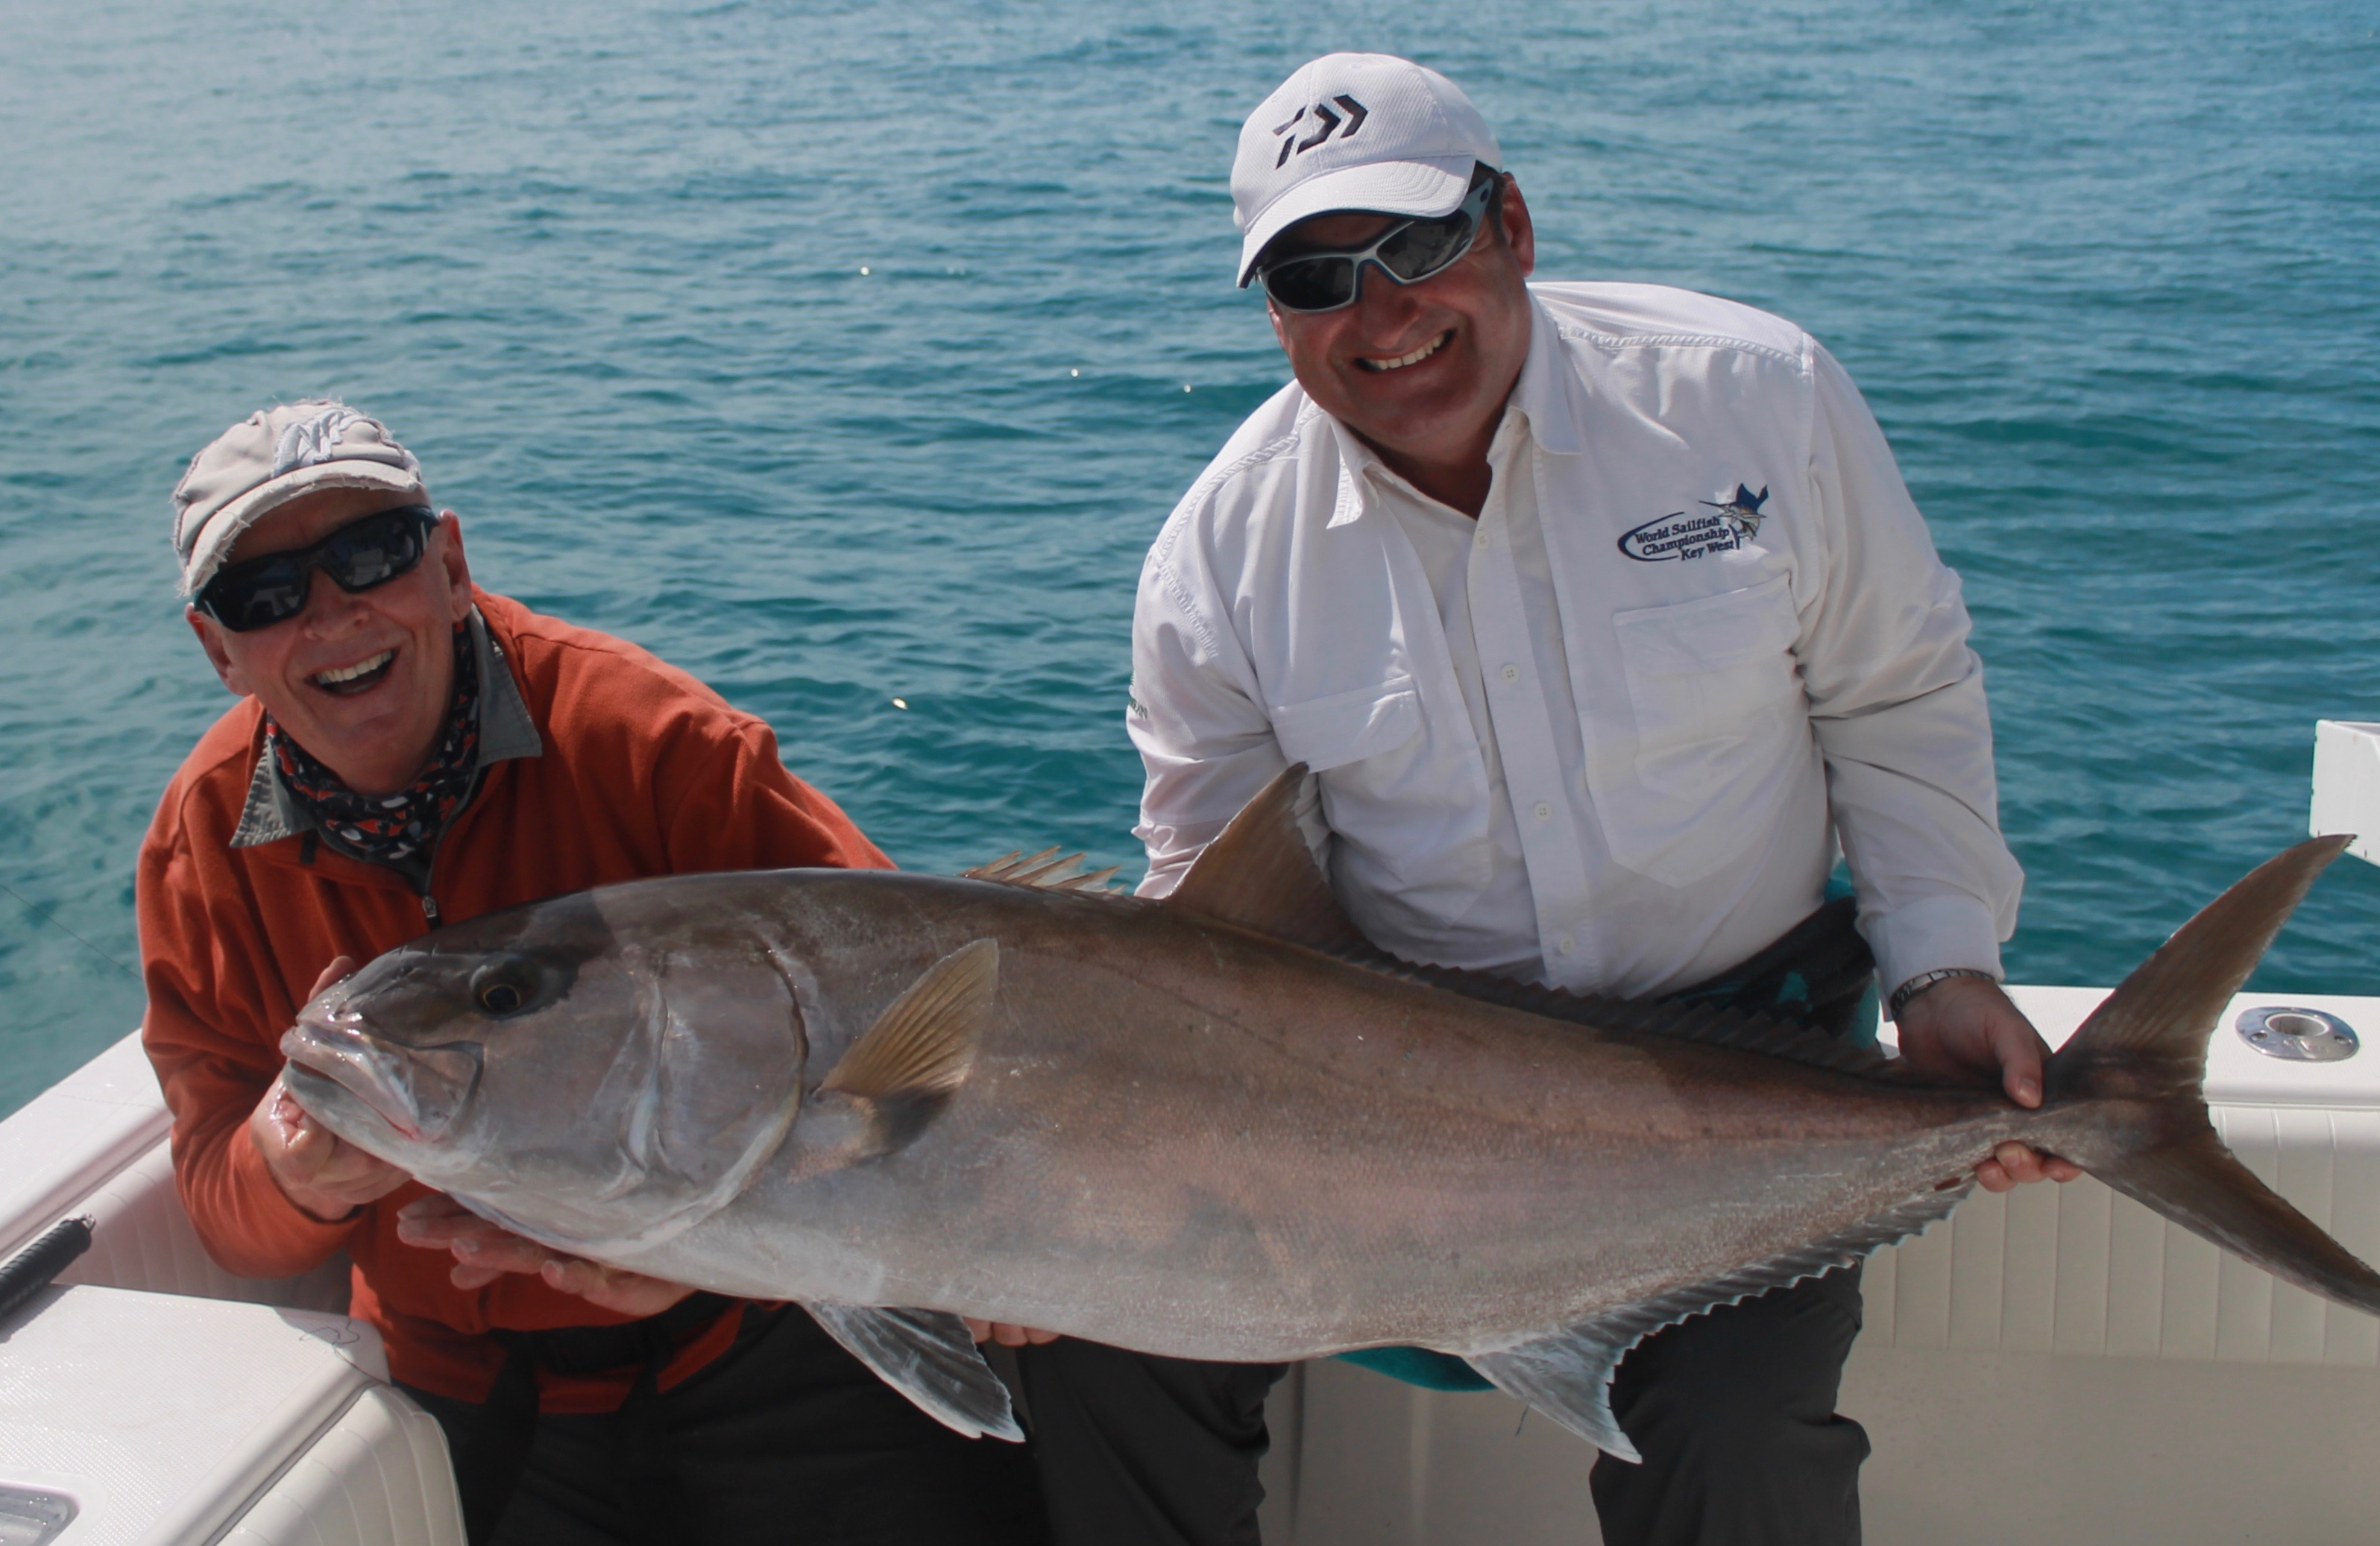 Fish key west florida as seen on espn february fishing for Fish in key west